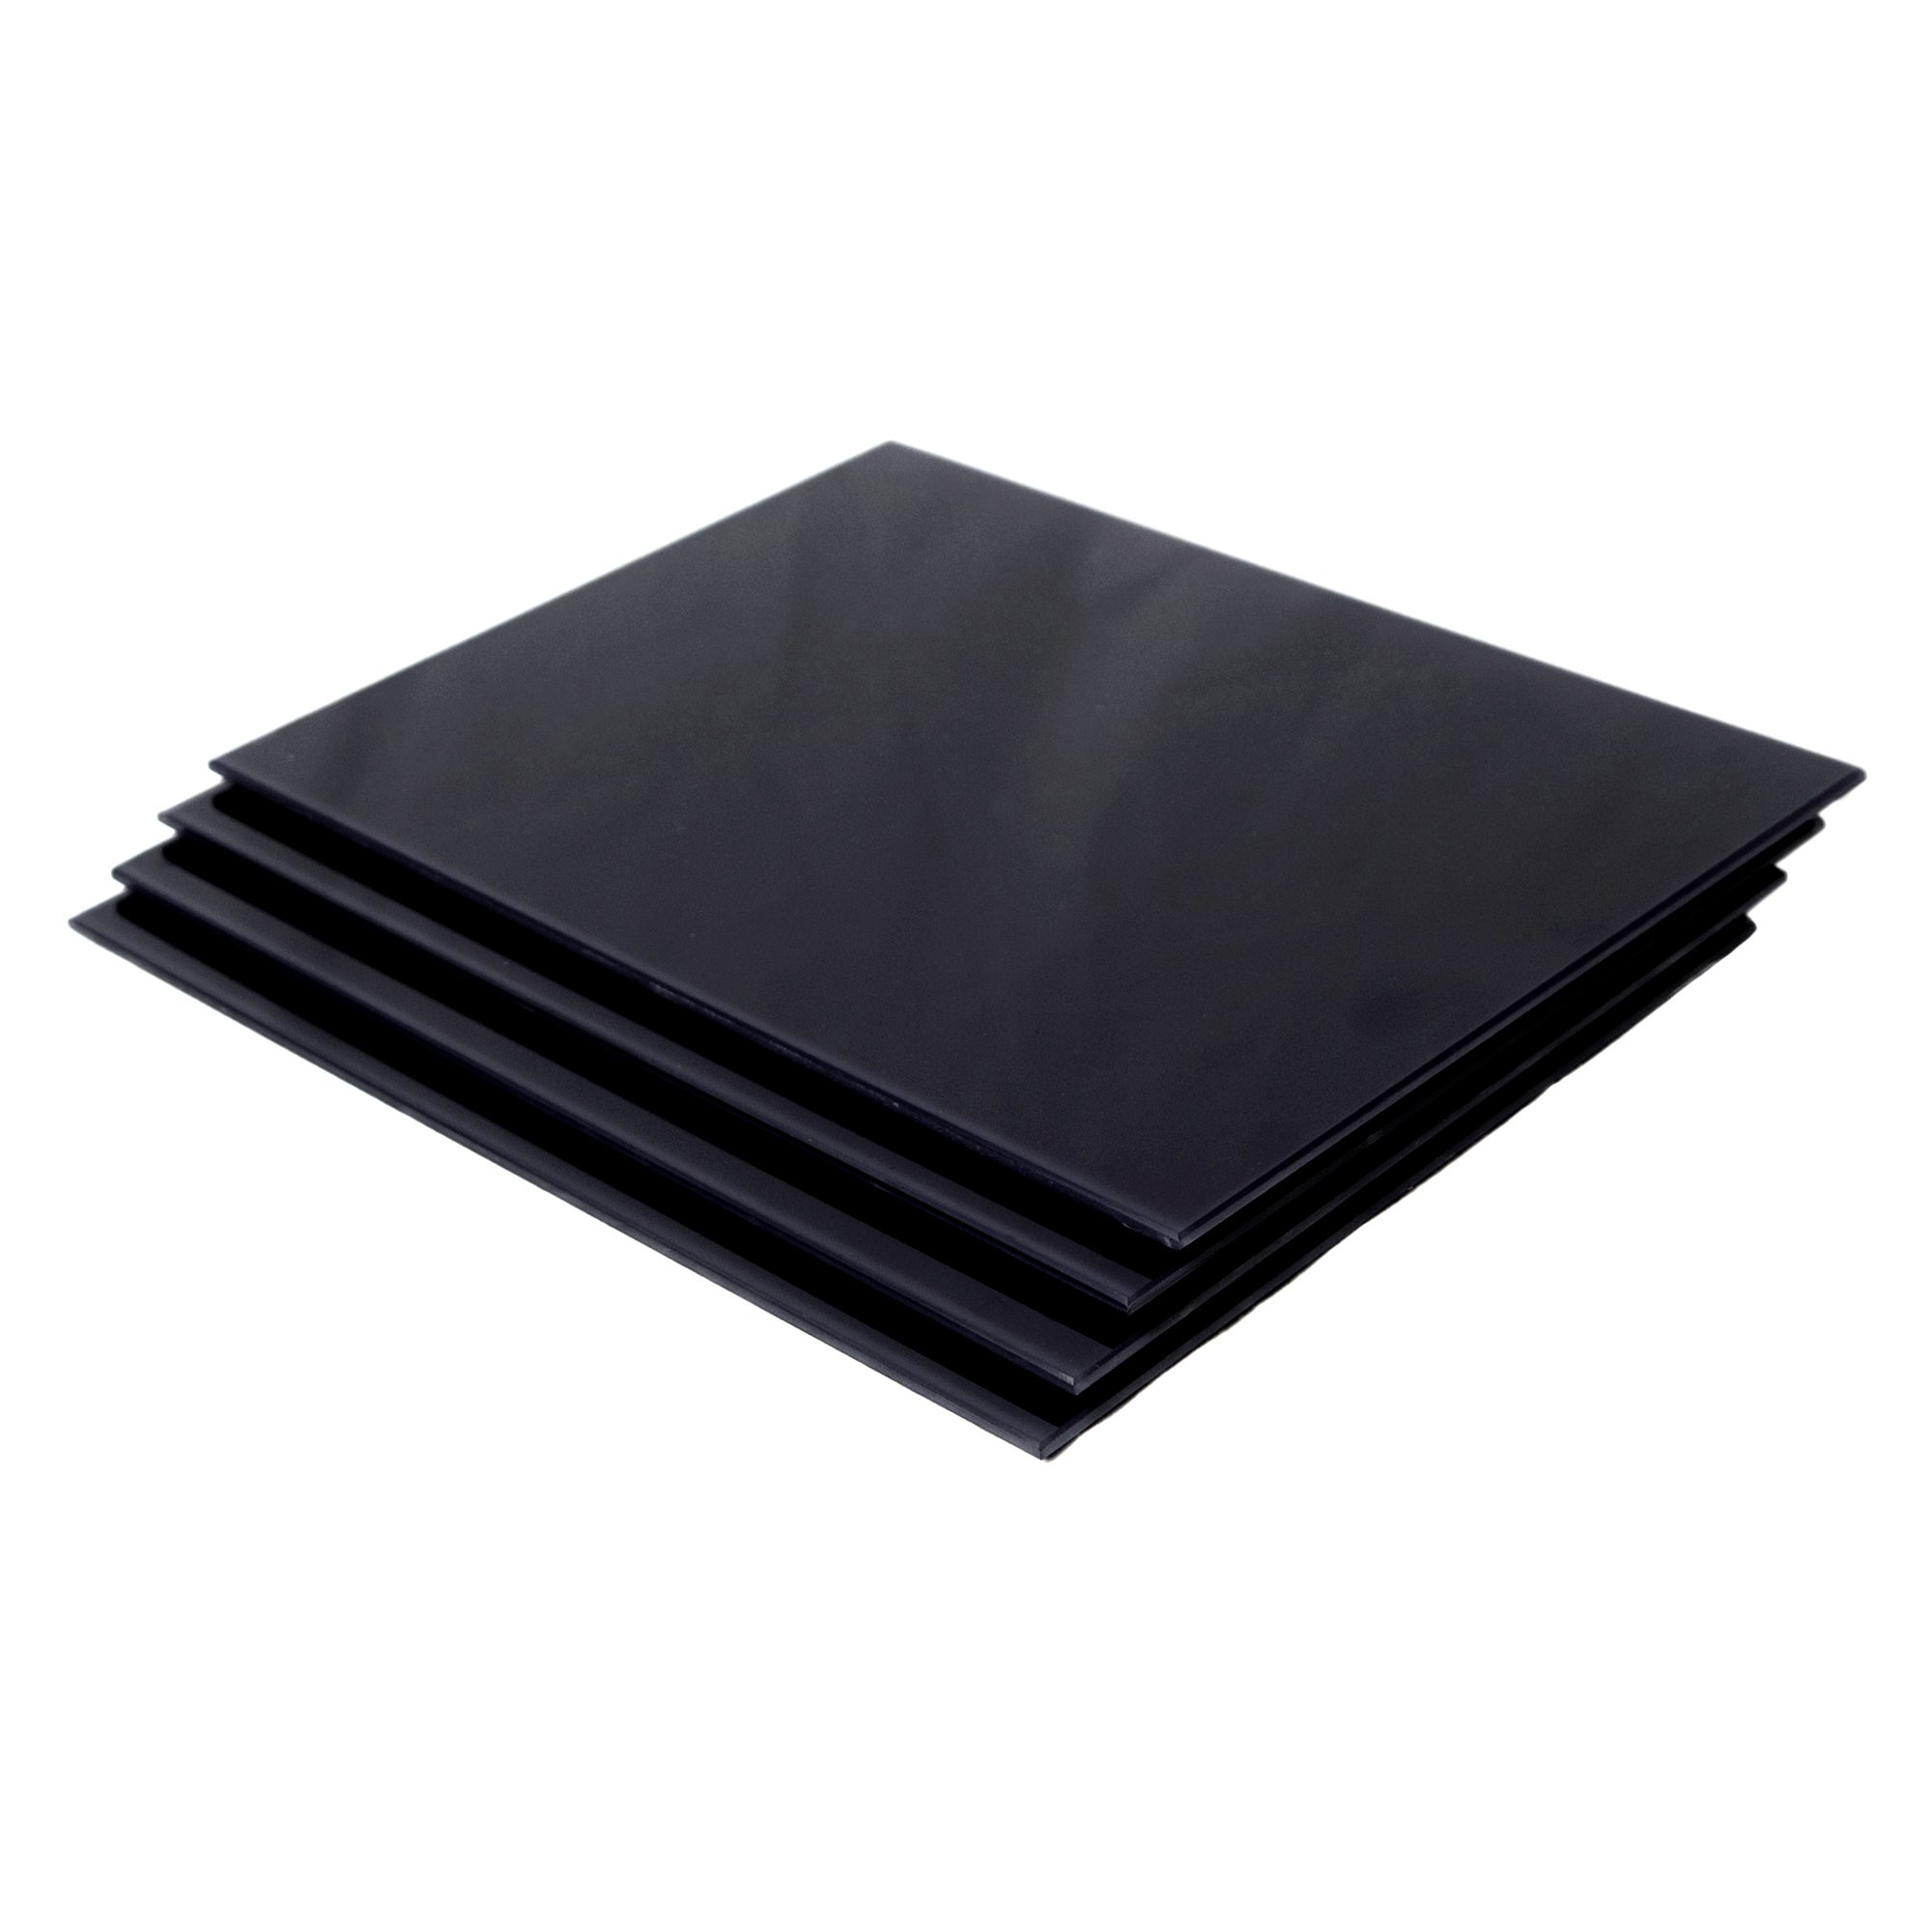 Black Spectrum Collection Set of 4 Glass Placemats